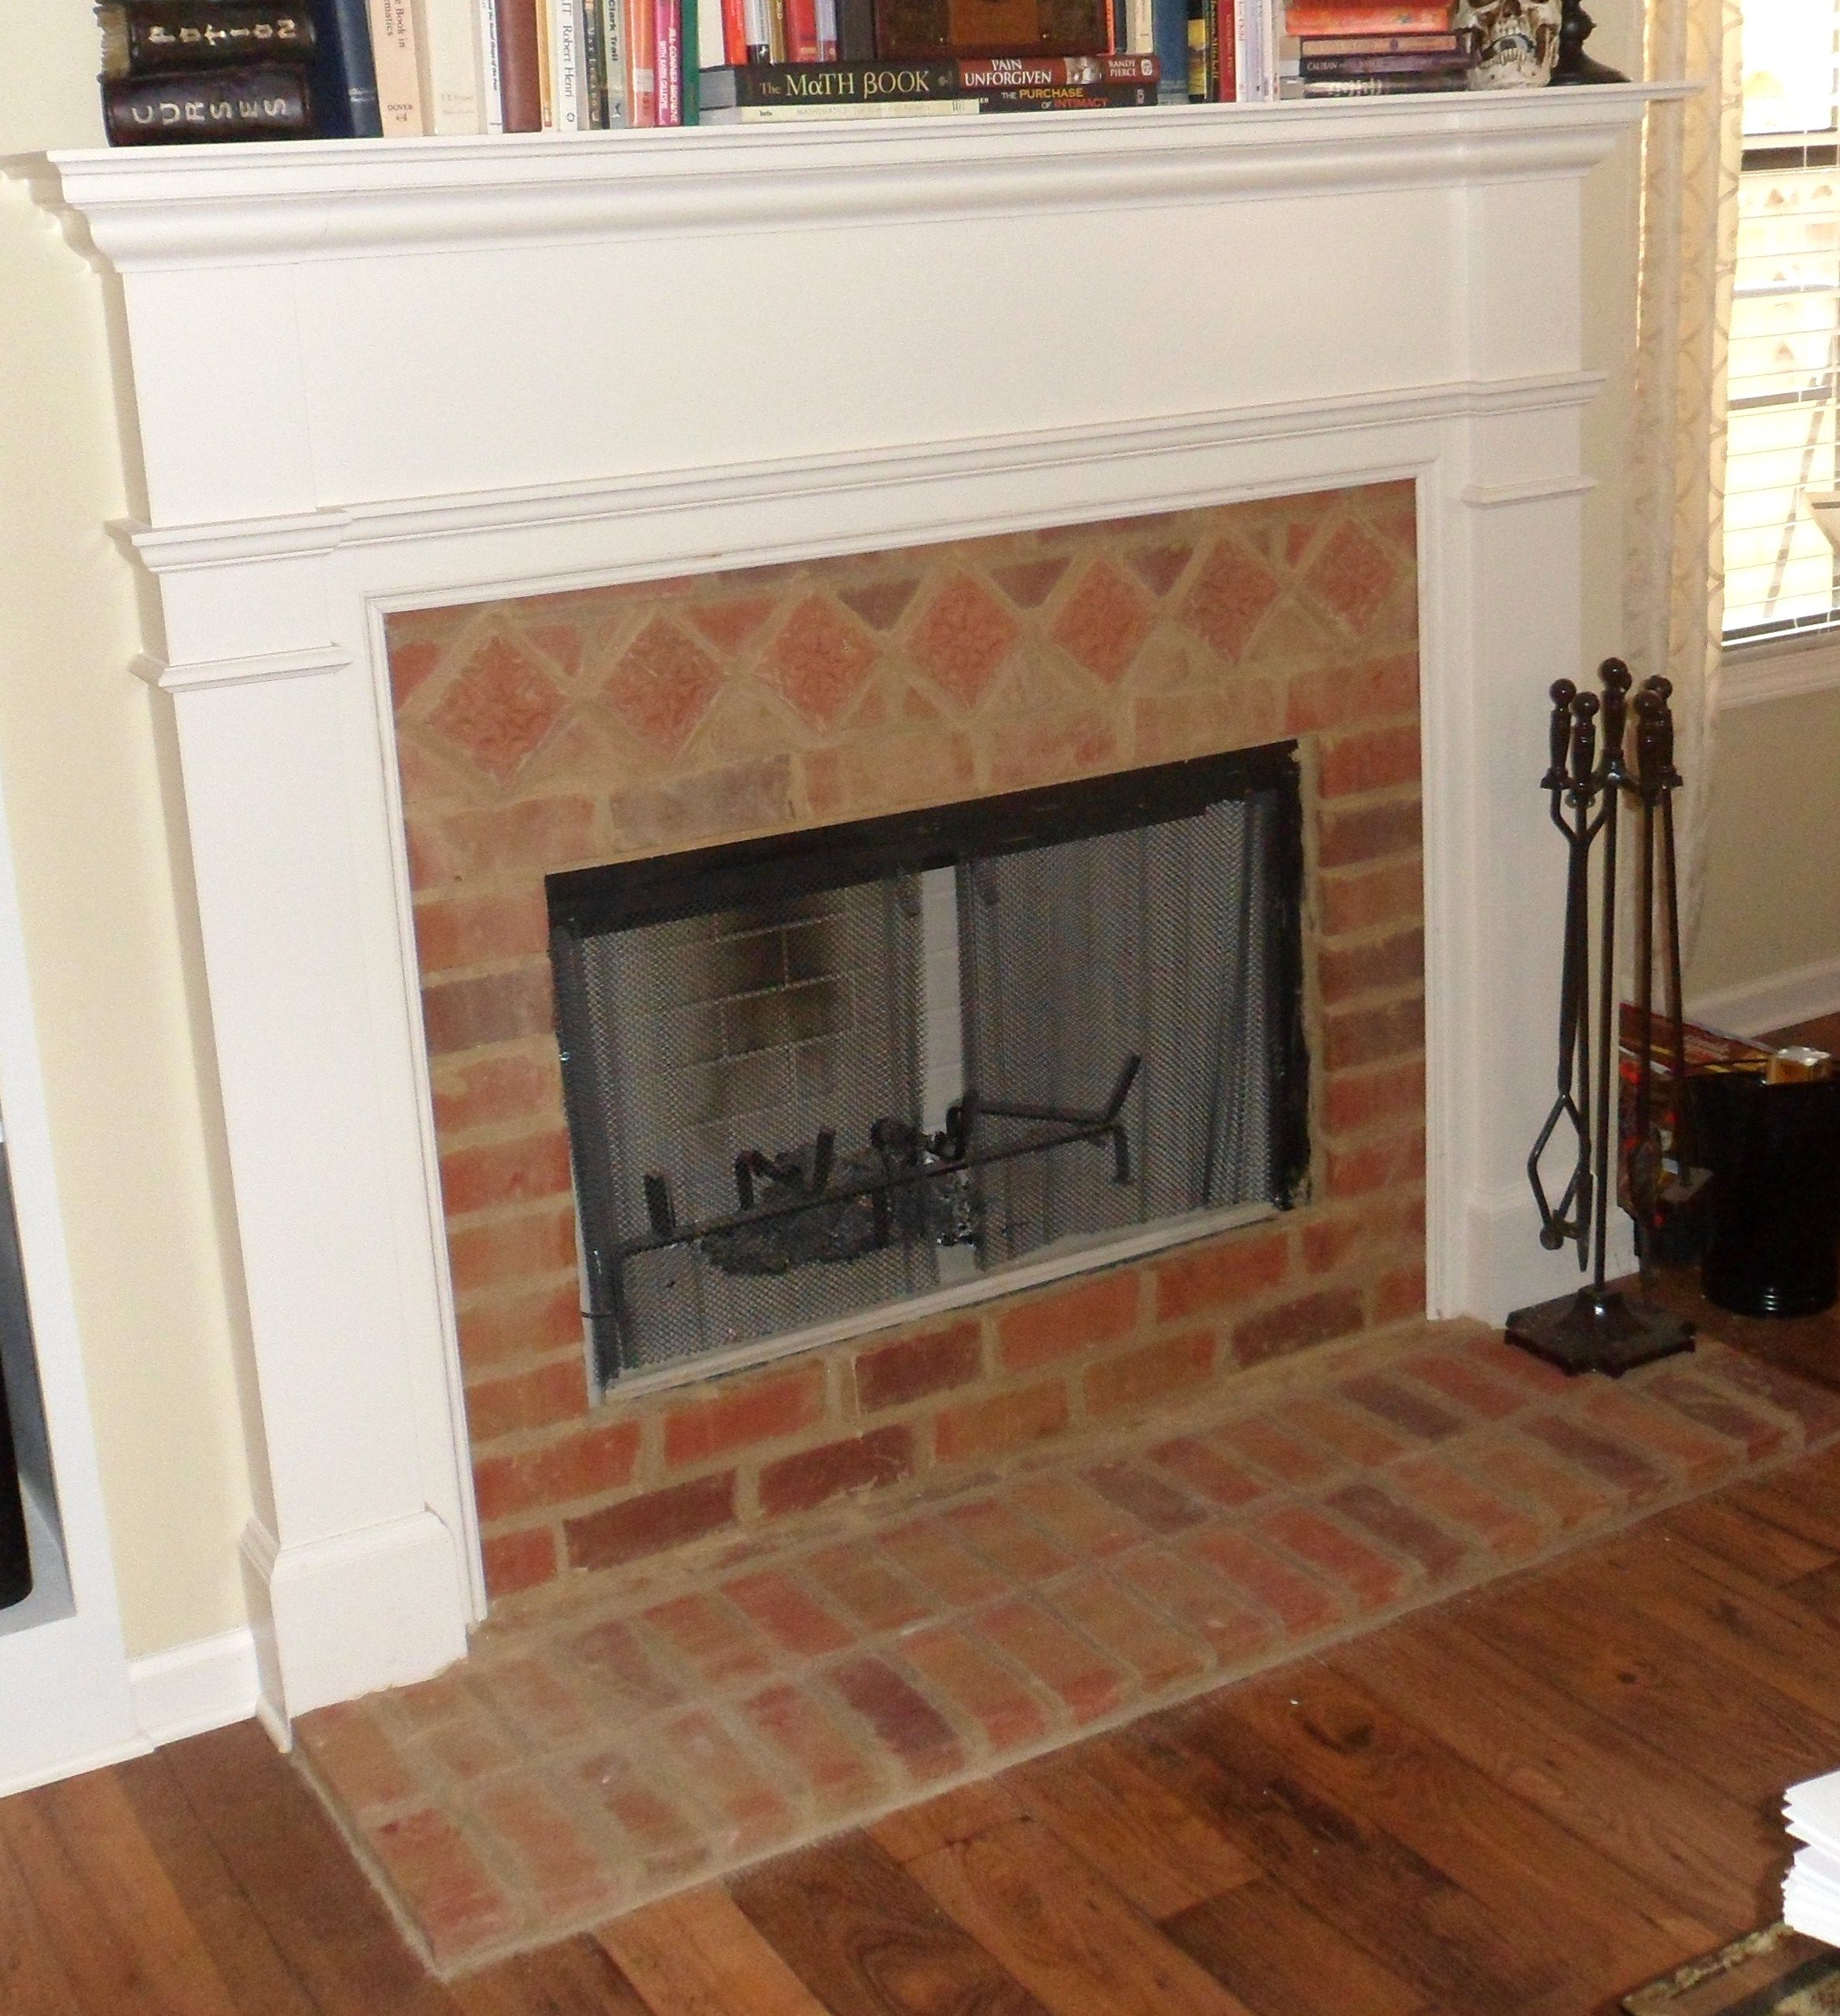 Lancaster Running Bond Tiles With Accent Tiles Were Used On The Hearth And Surround Of This Fireplace Fireplace Tile Brick Tiles Fireplace